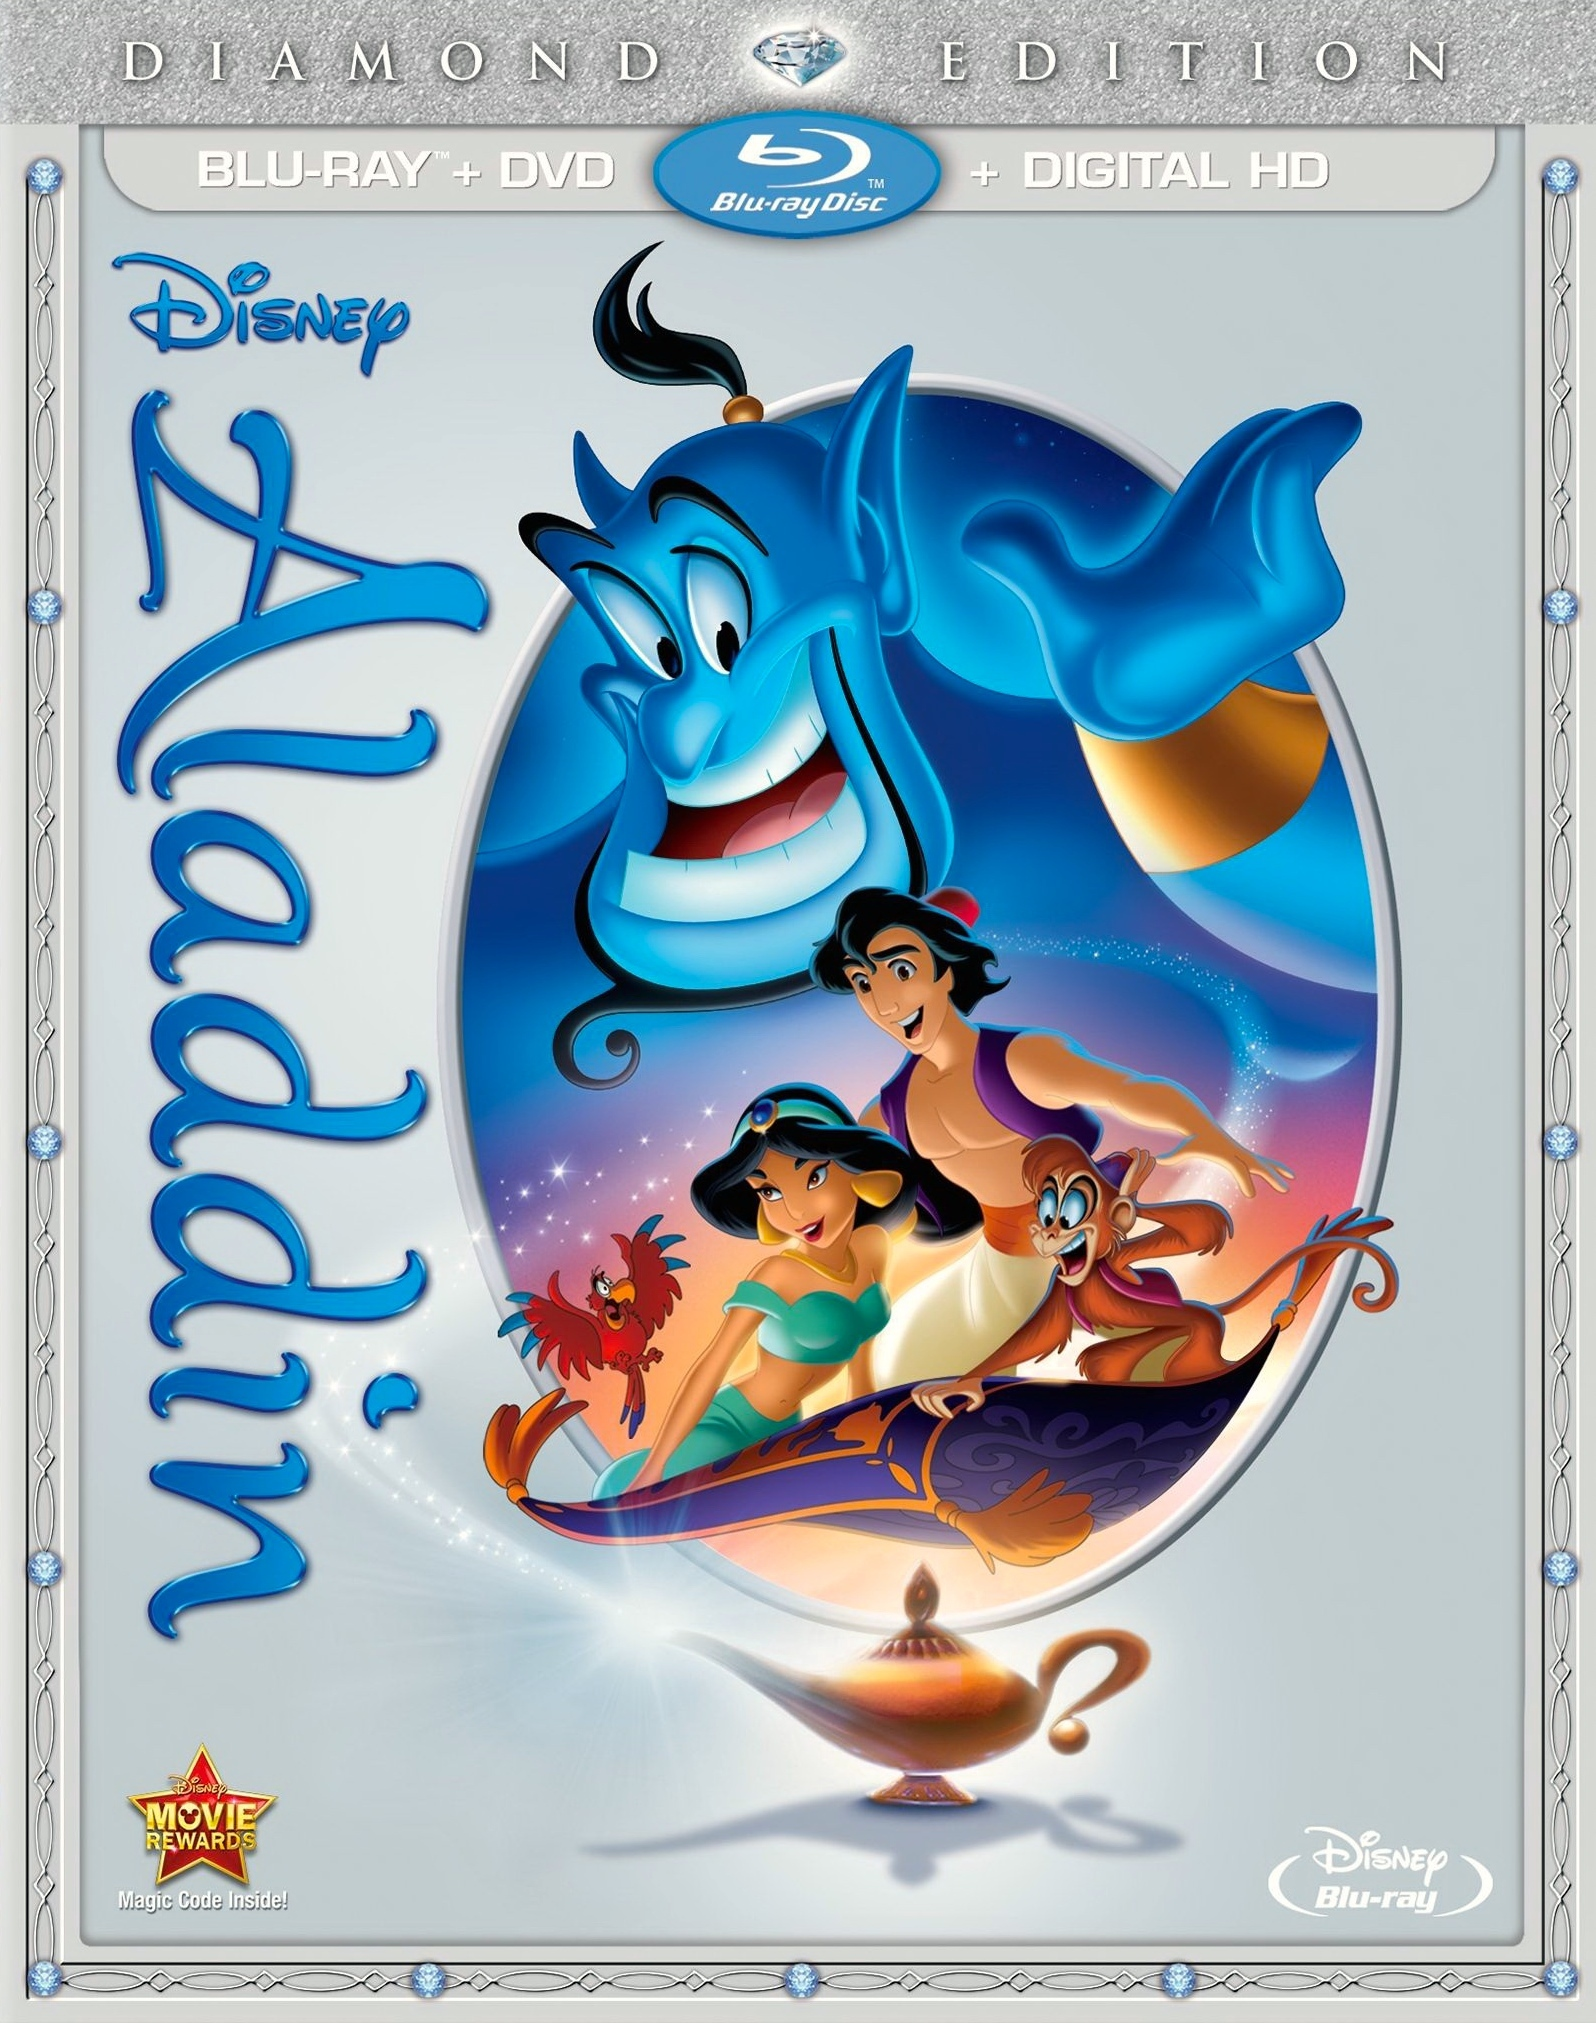 aladdin-diamond-edition-cover